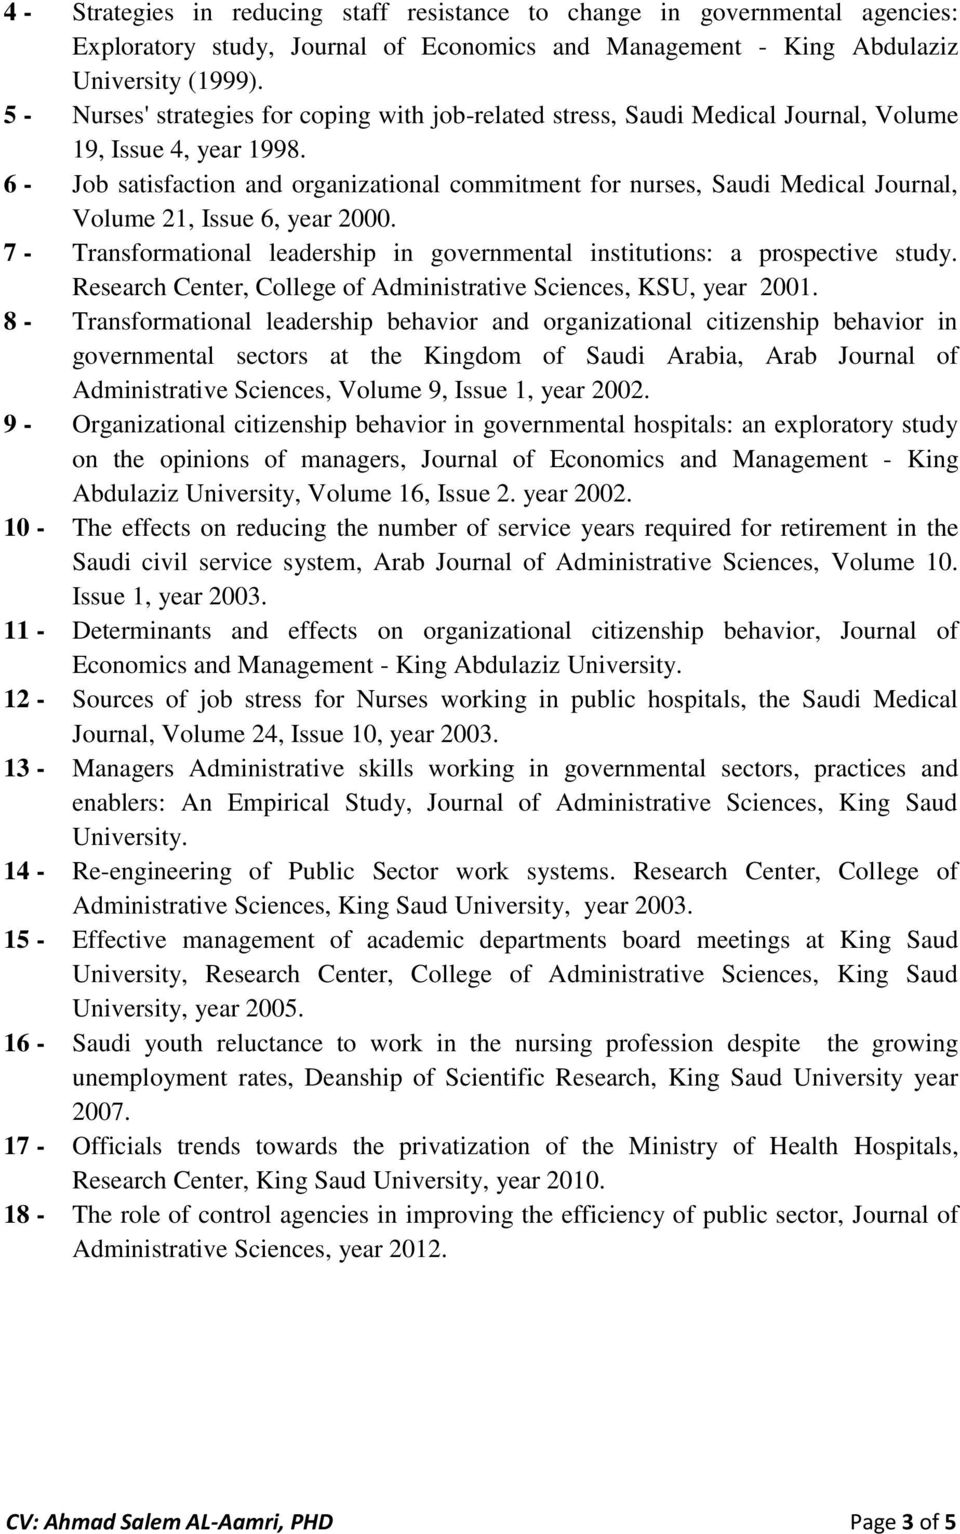 6 - Job satisfaction and organizational commitment for nurses, Saudi Medical Journal, Volume 21, Issue 6, year 2000. 7 - Transformational leadership in governmental institutions: a prospective study.